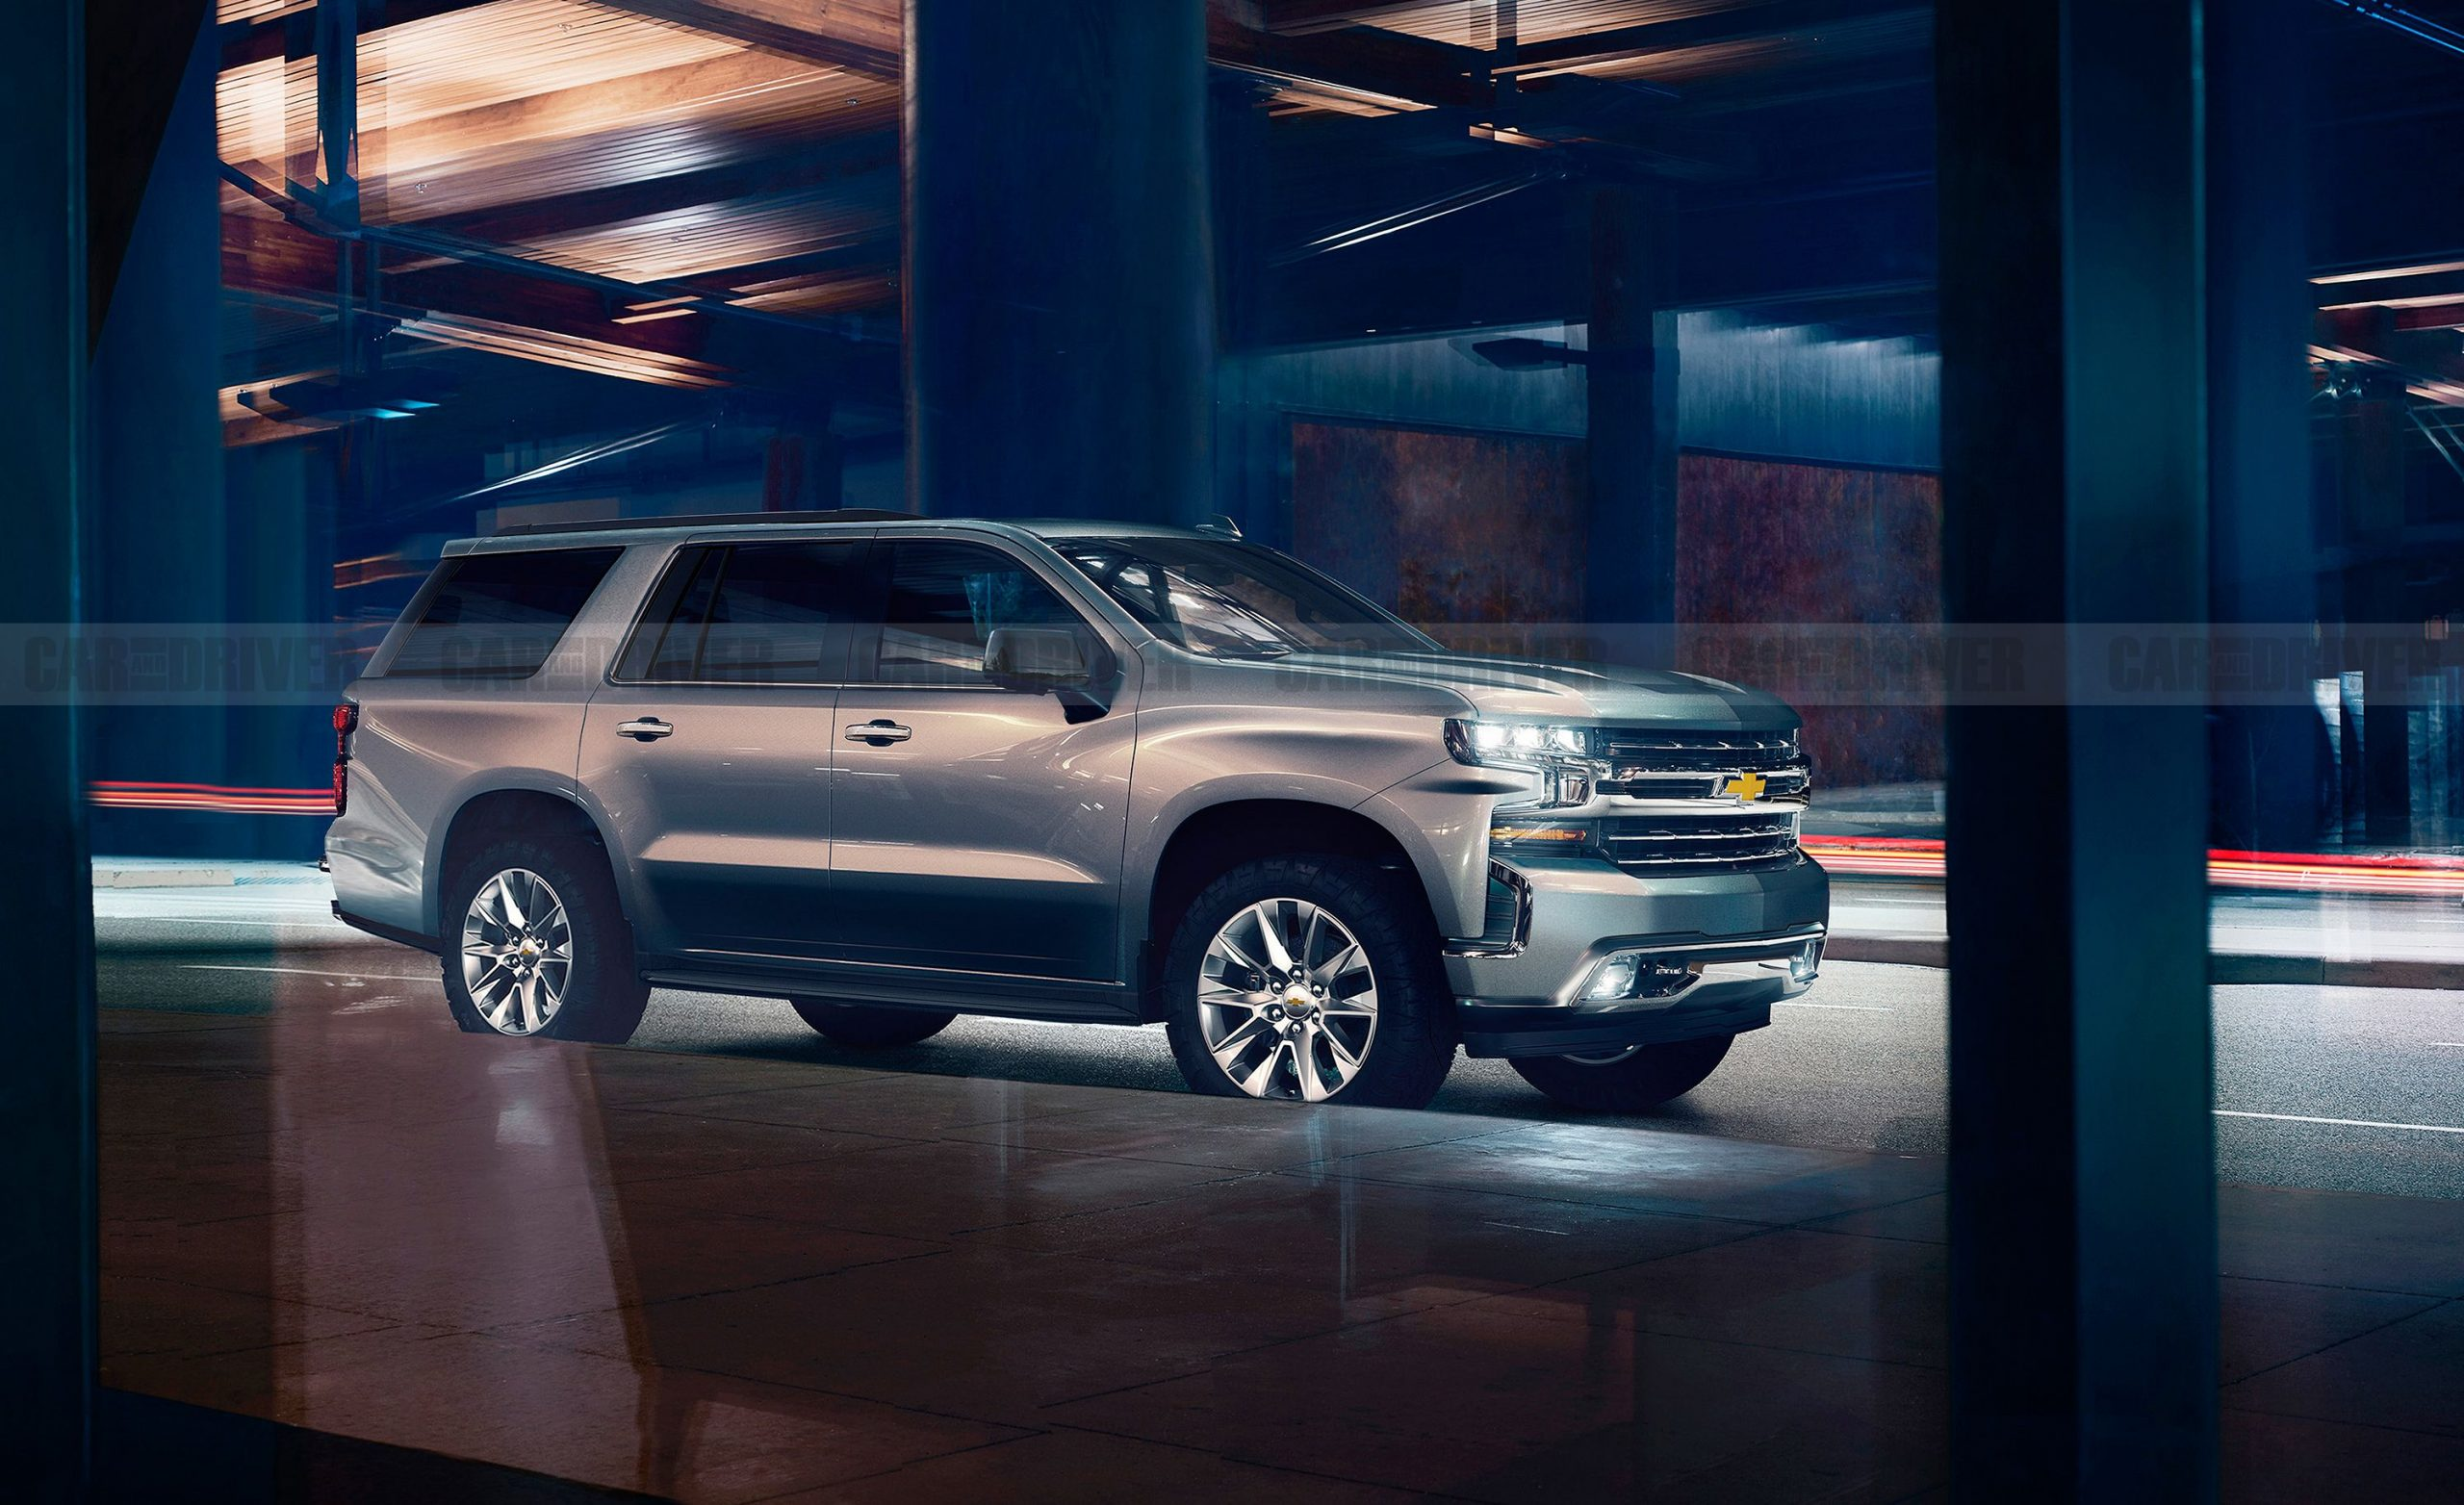 2021 Chevrolet Tahoe – Future Full-Size Suv 2022 Chevy Tahoe Build, Price, Pictures